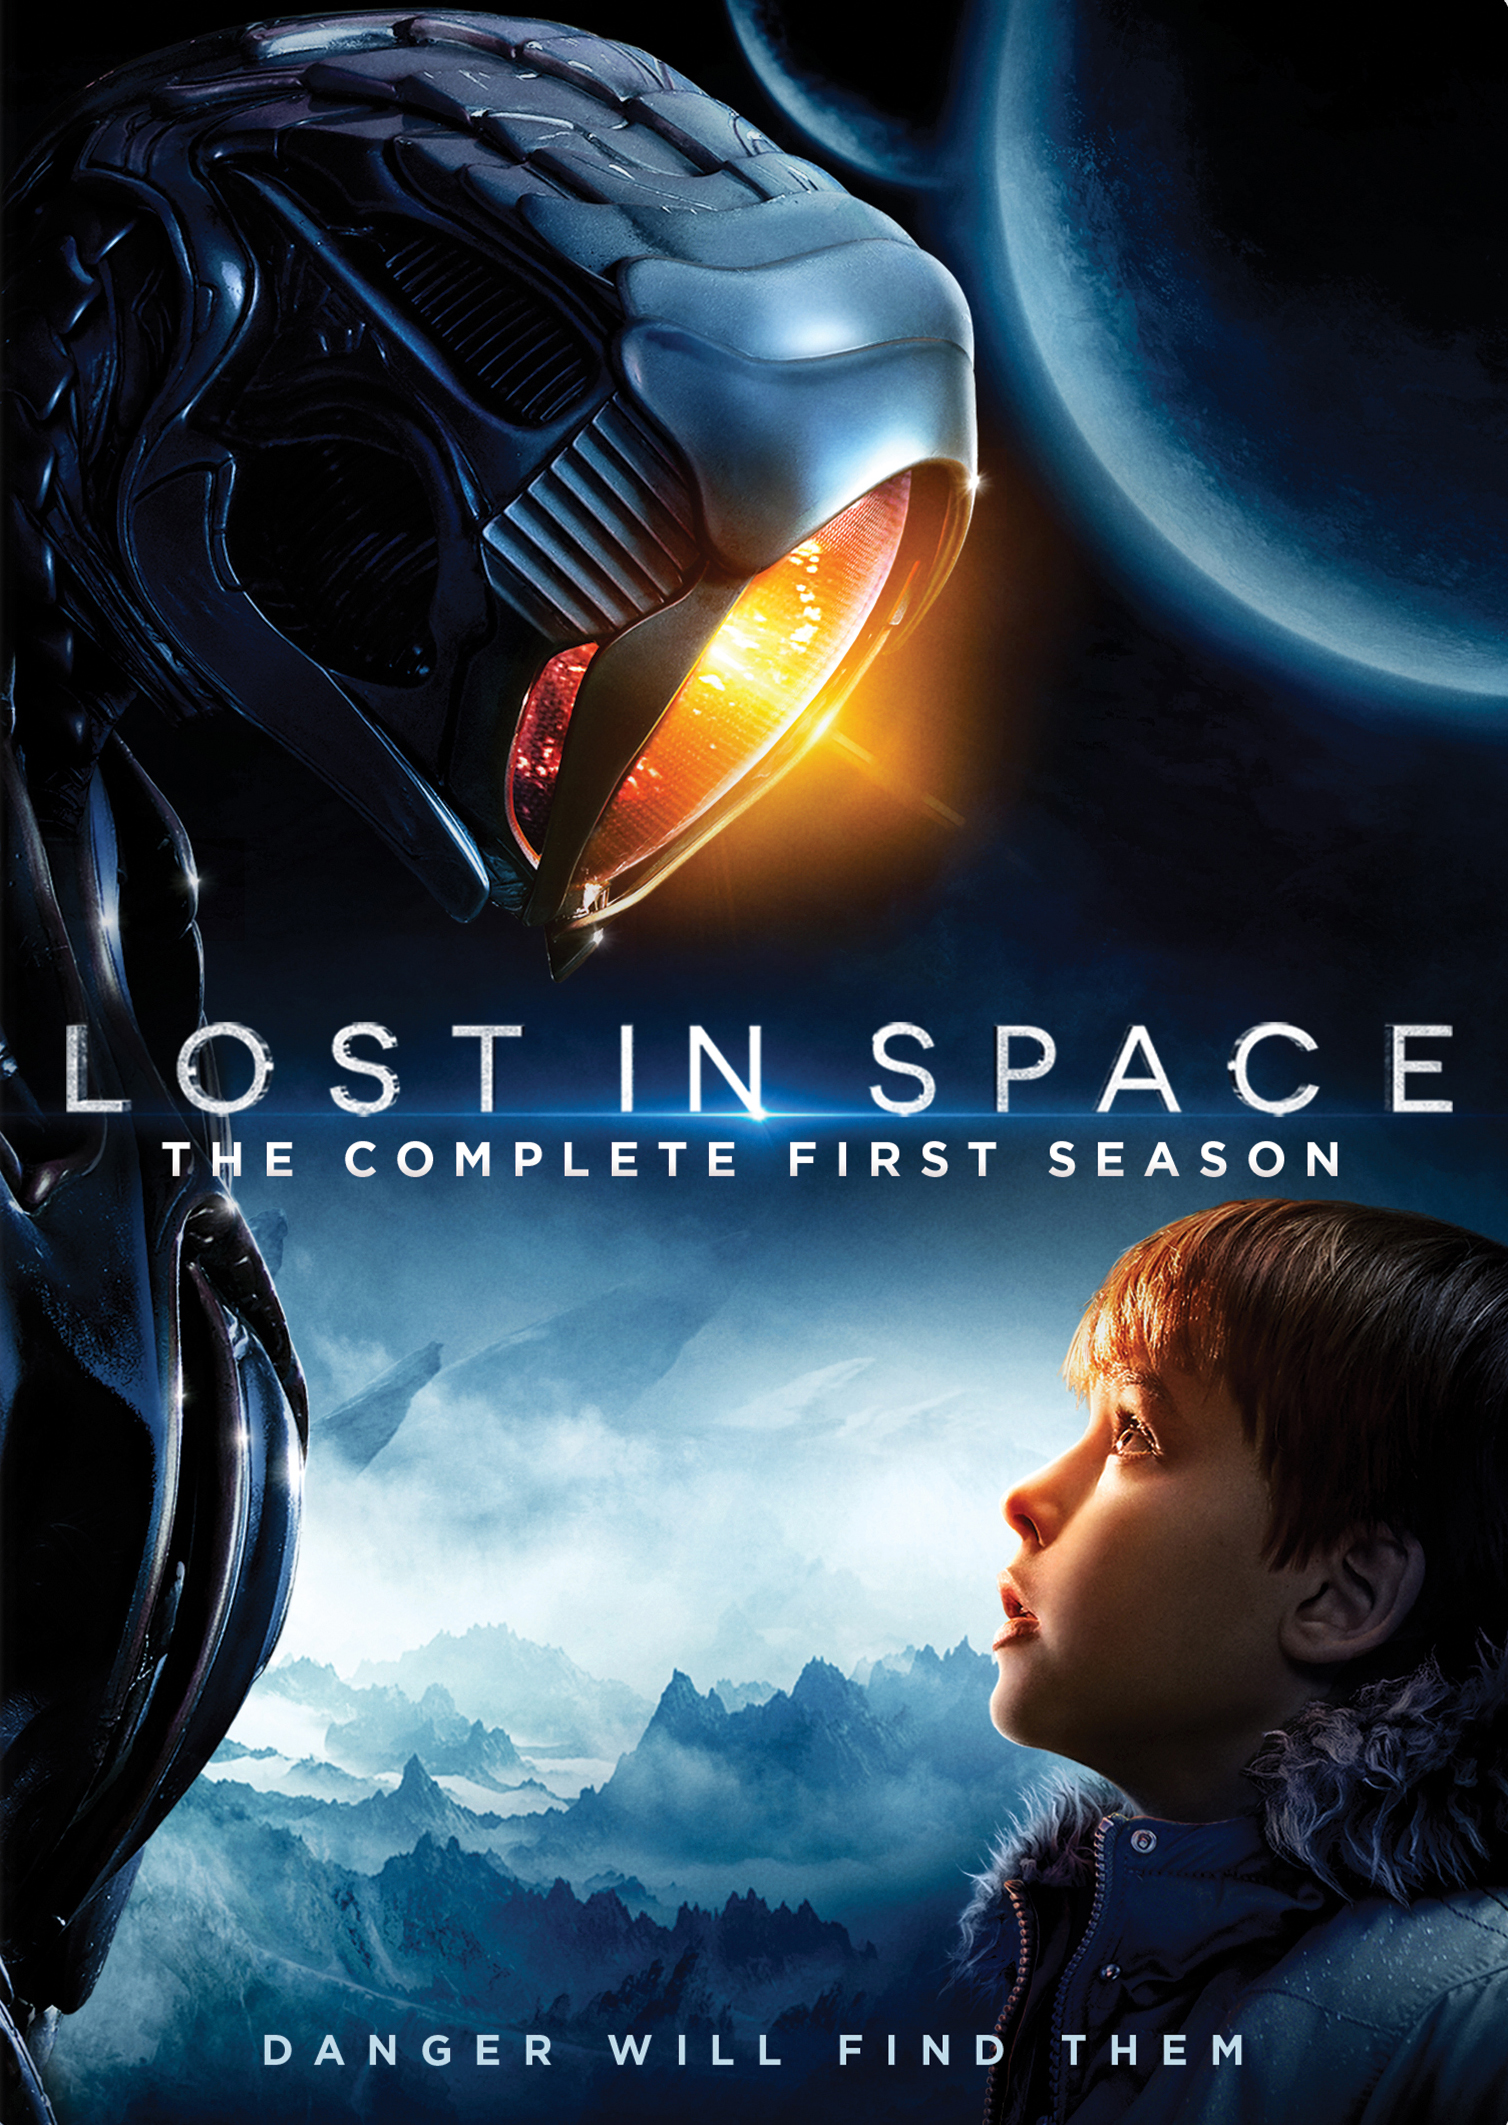 Lost In Space Season 1 Dvd